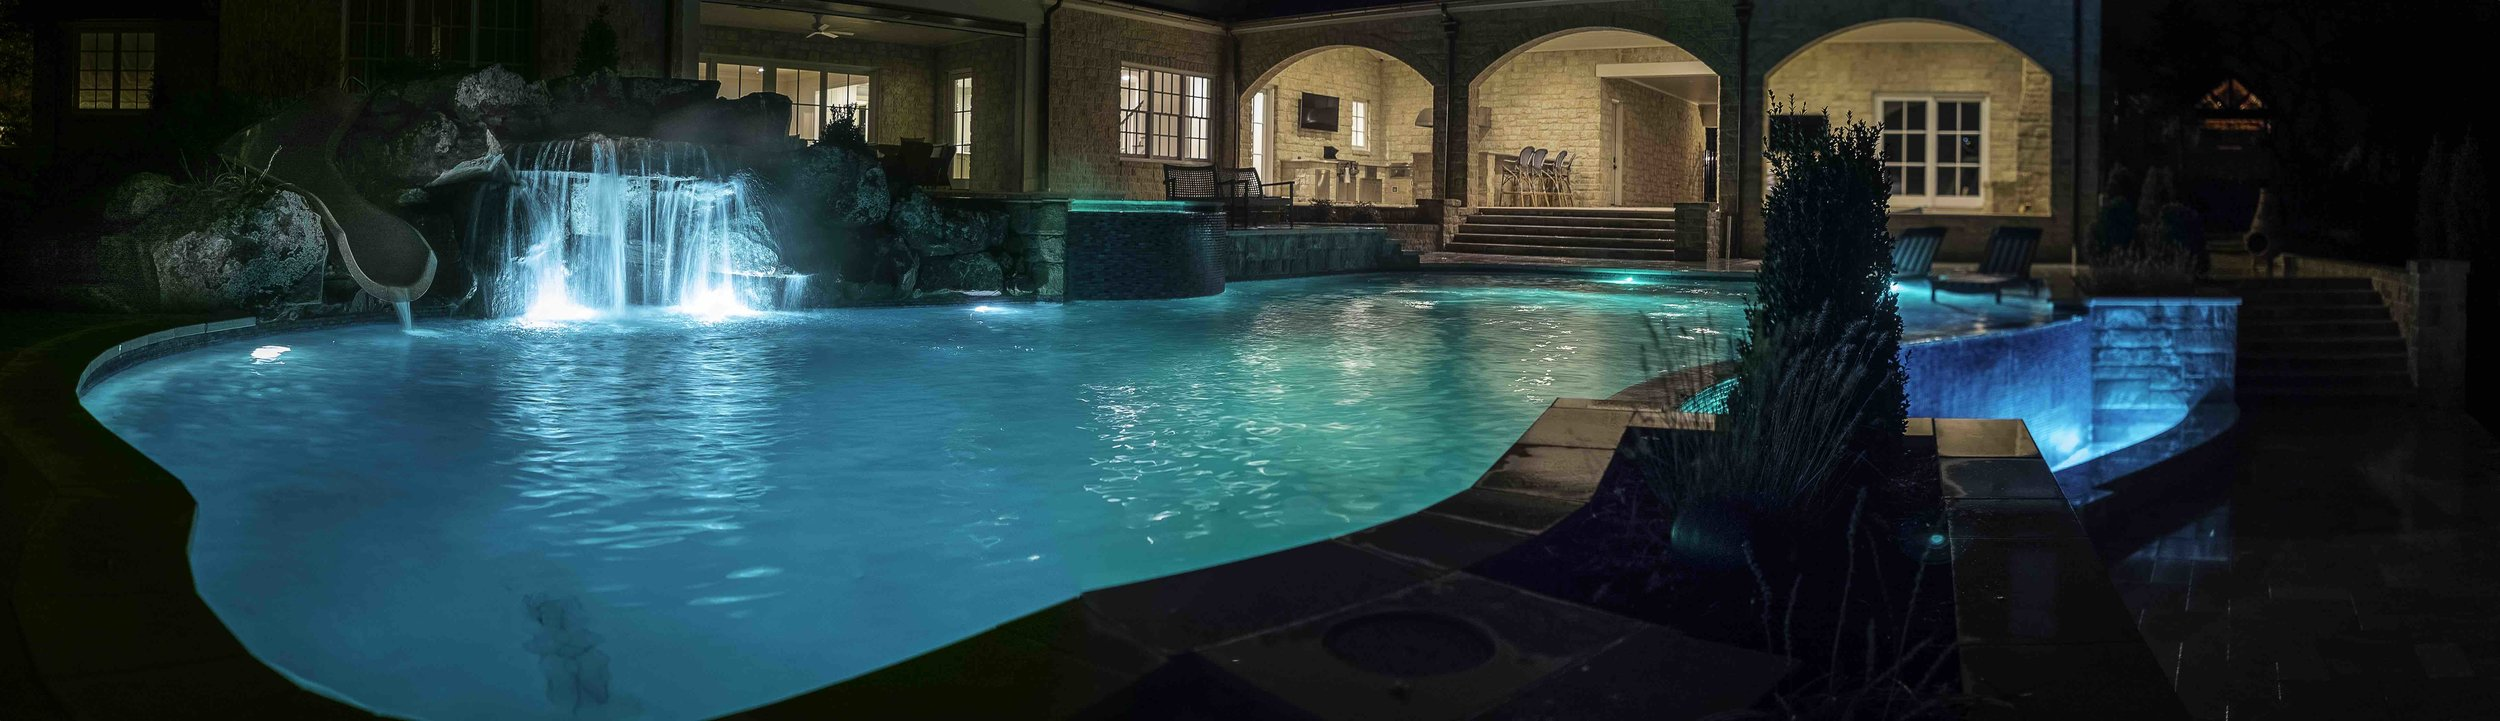 Myers Pool | Aquascape Pools | Edmond | evening | color | ANDREW G | super wide panorama | Print Ready - 07.jpg